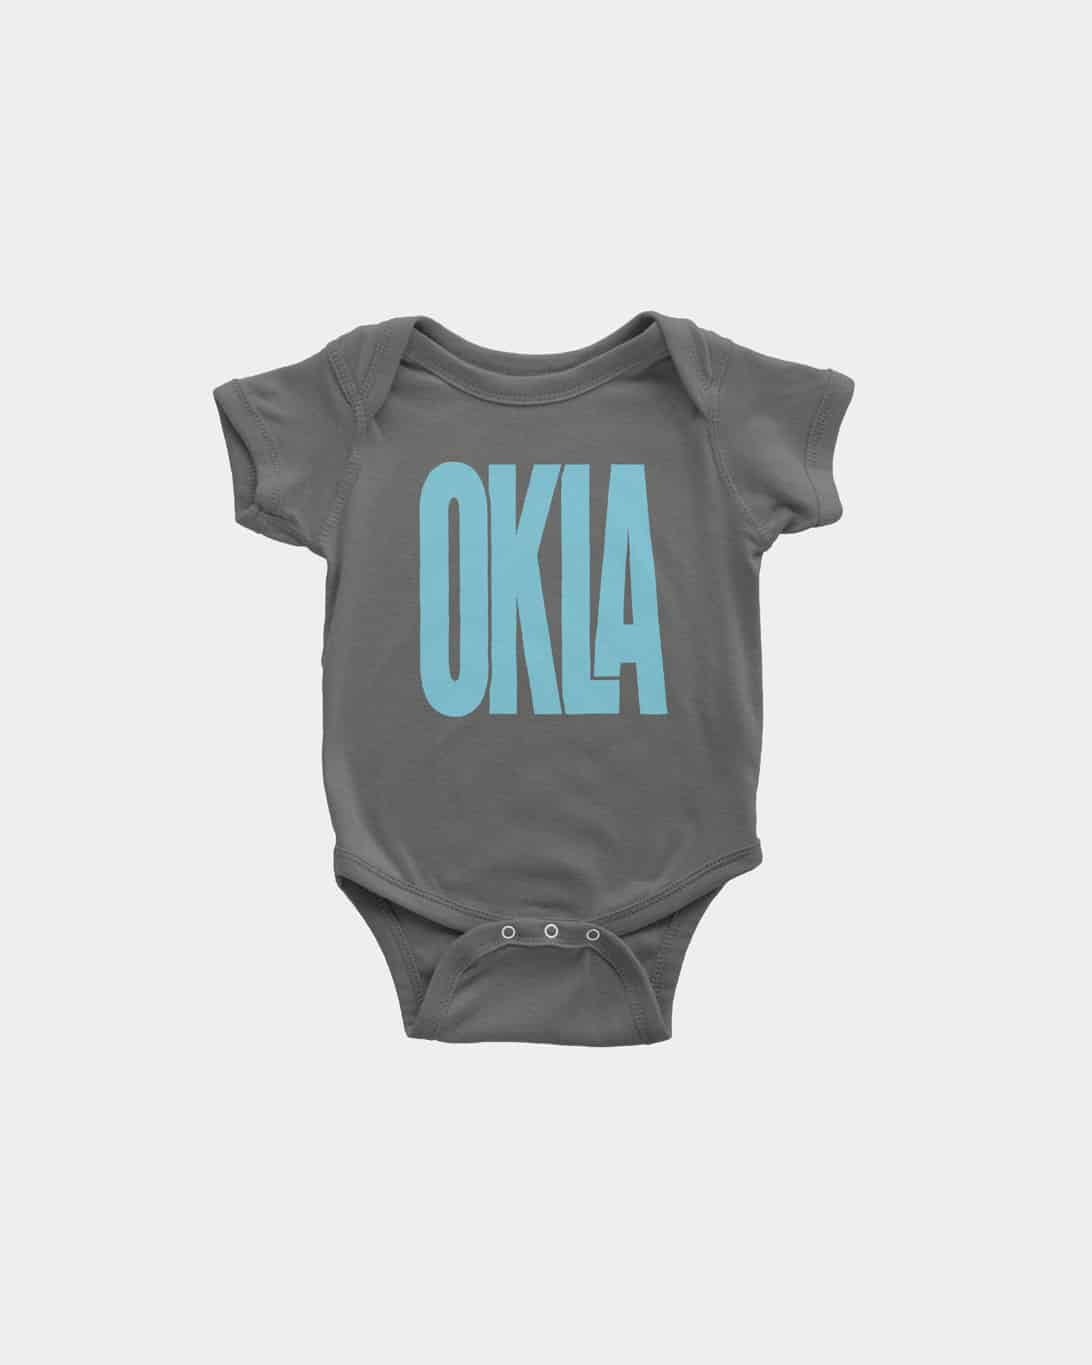 A charcola grey, kid's onesie with OKLA printed on the front in blue